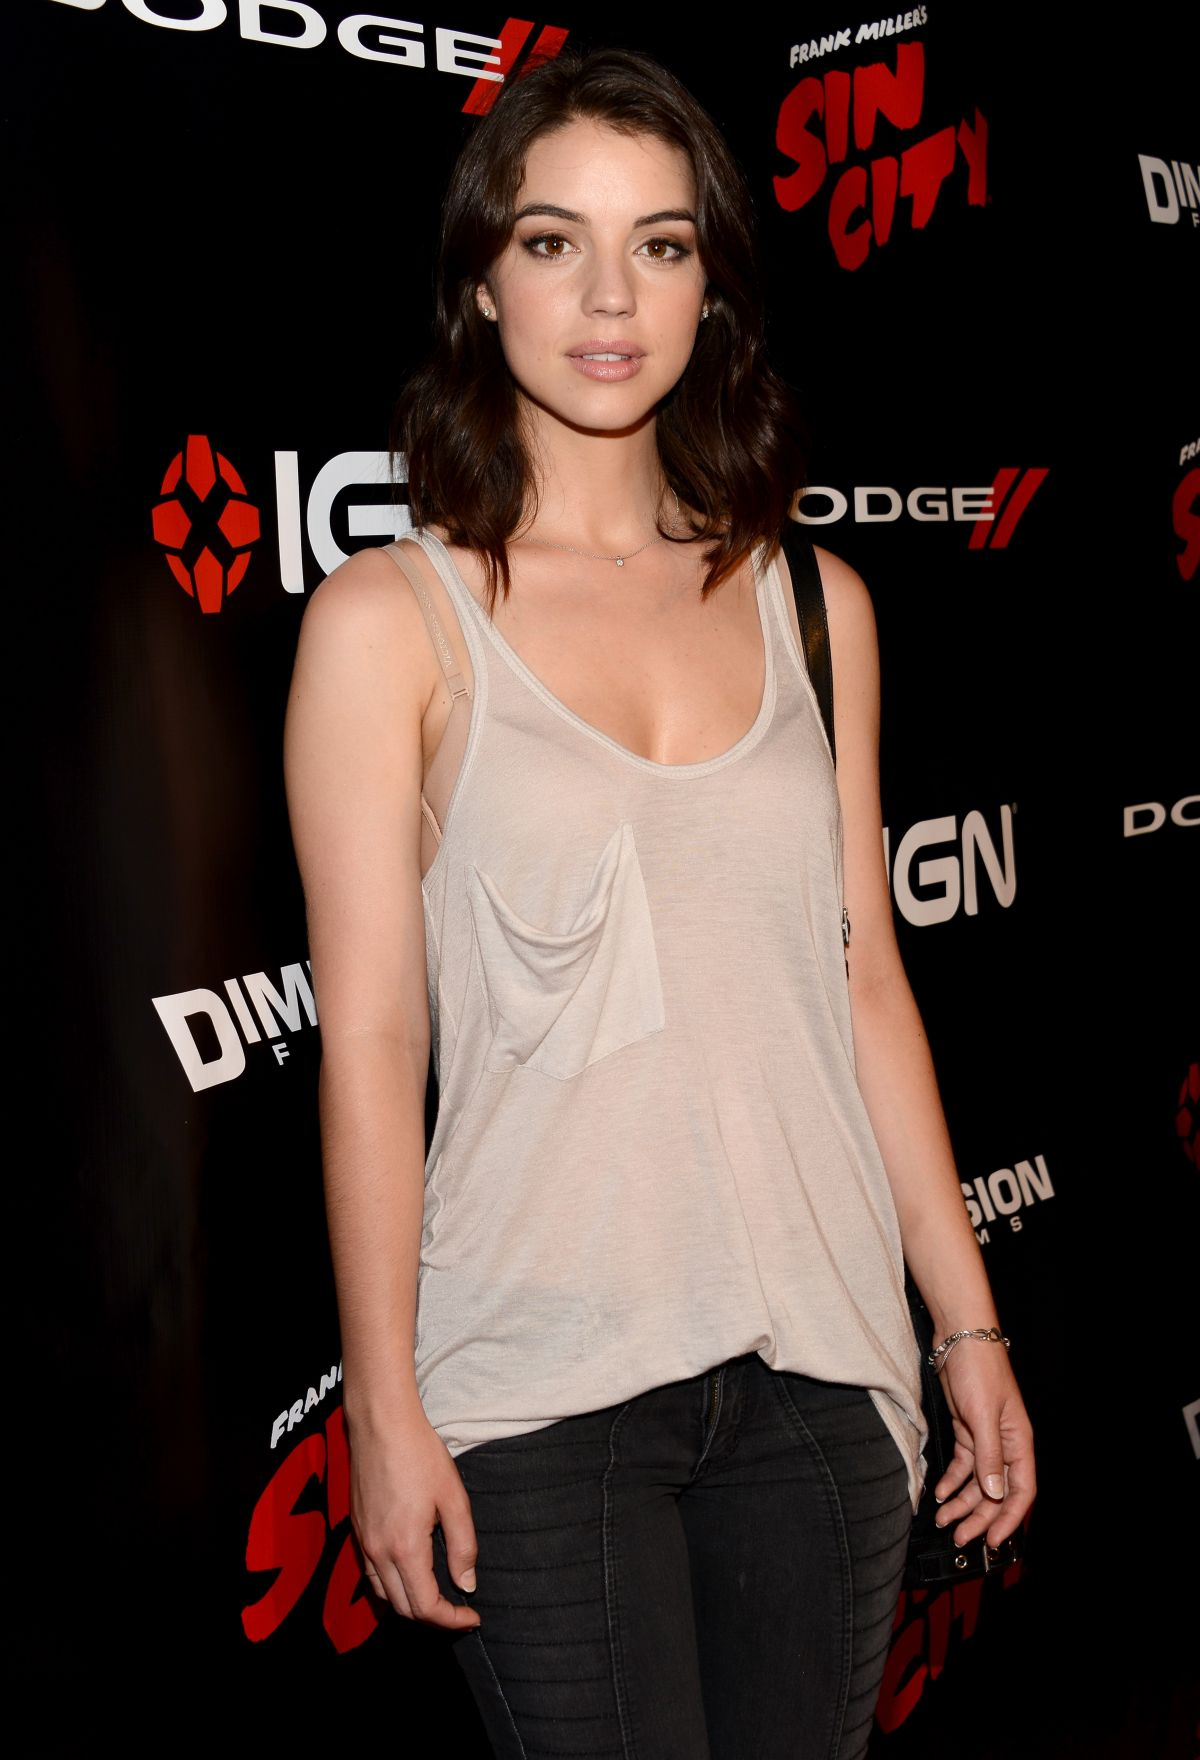 ADELAIDE KANE at IGN Presentation at Comic-con 2014 in San Diego